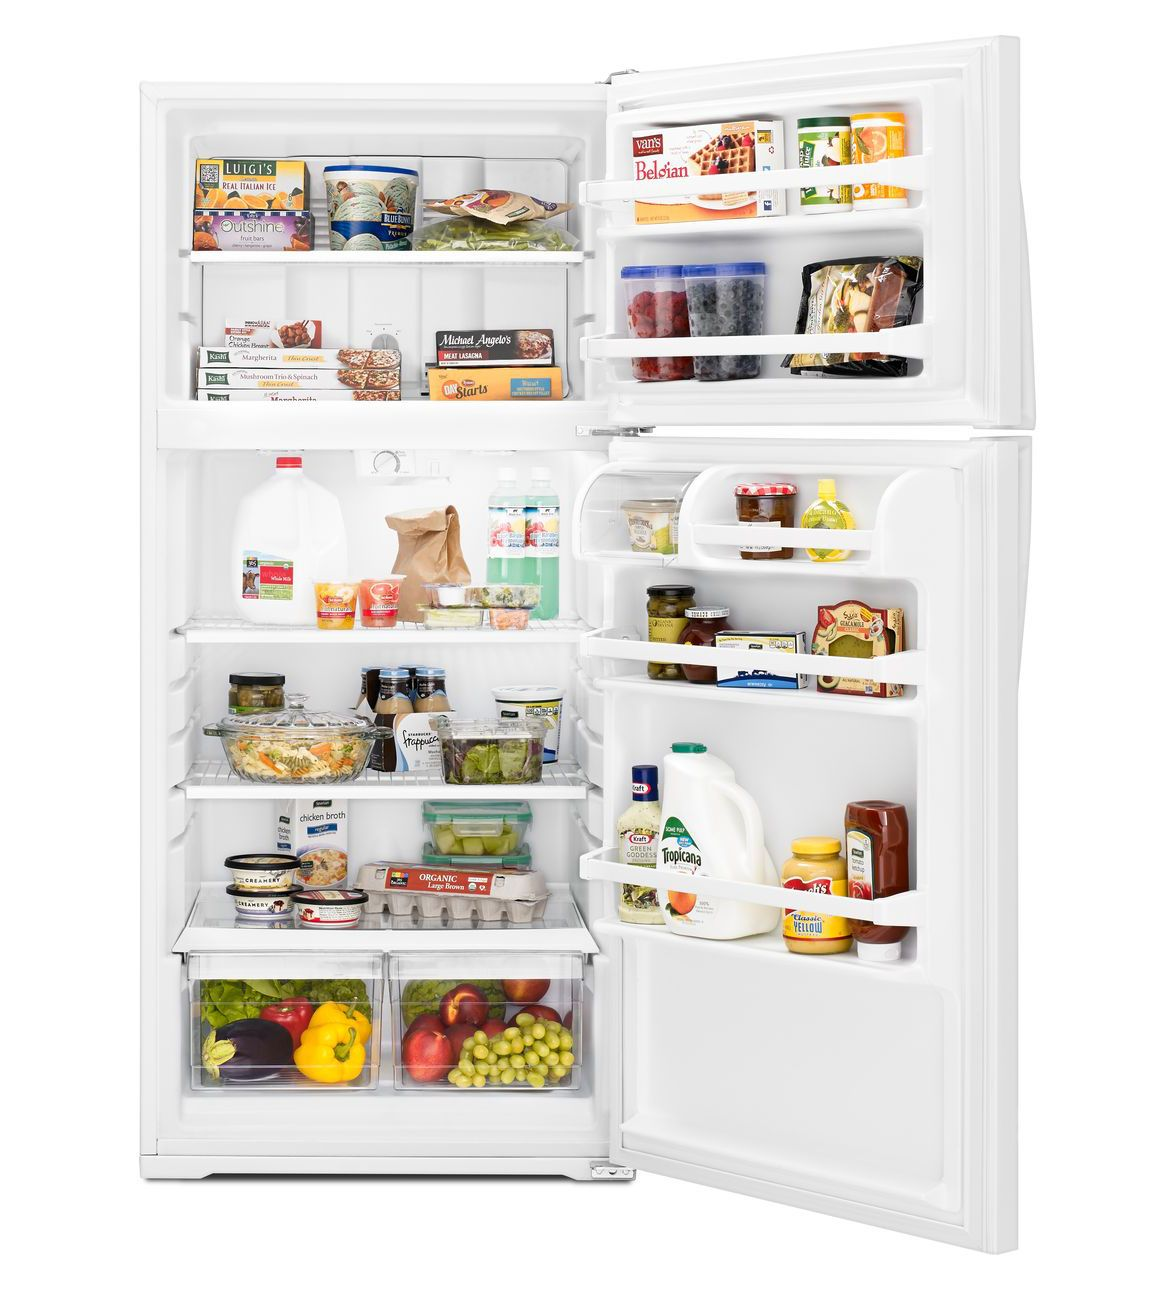 28 Inches Wide Top Freezer Refrigerator More Colors